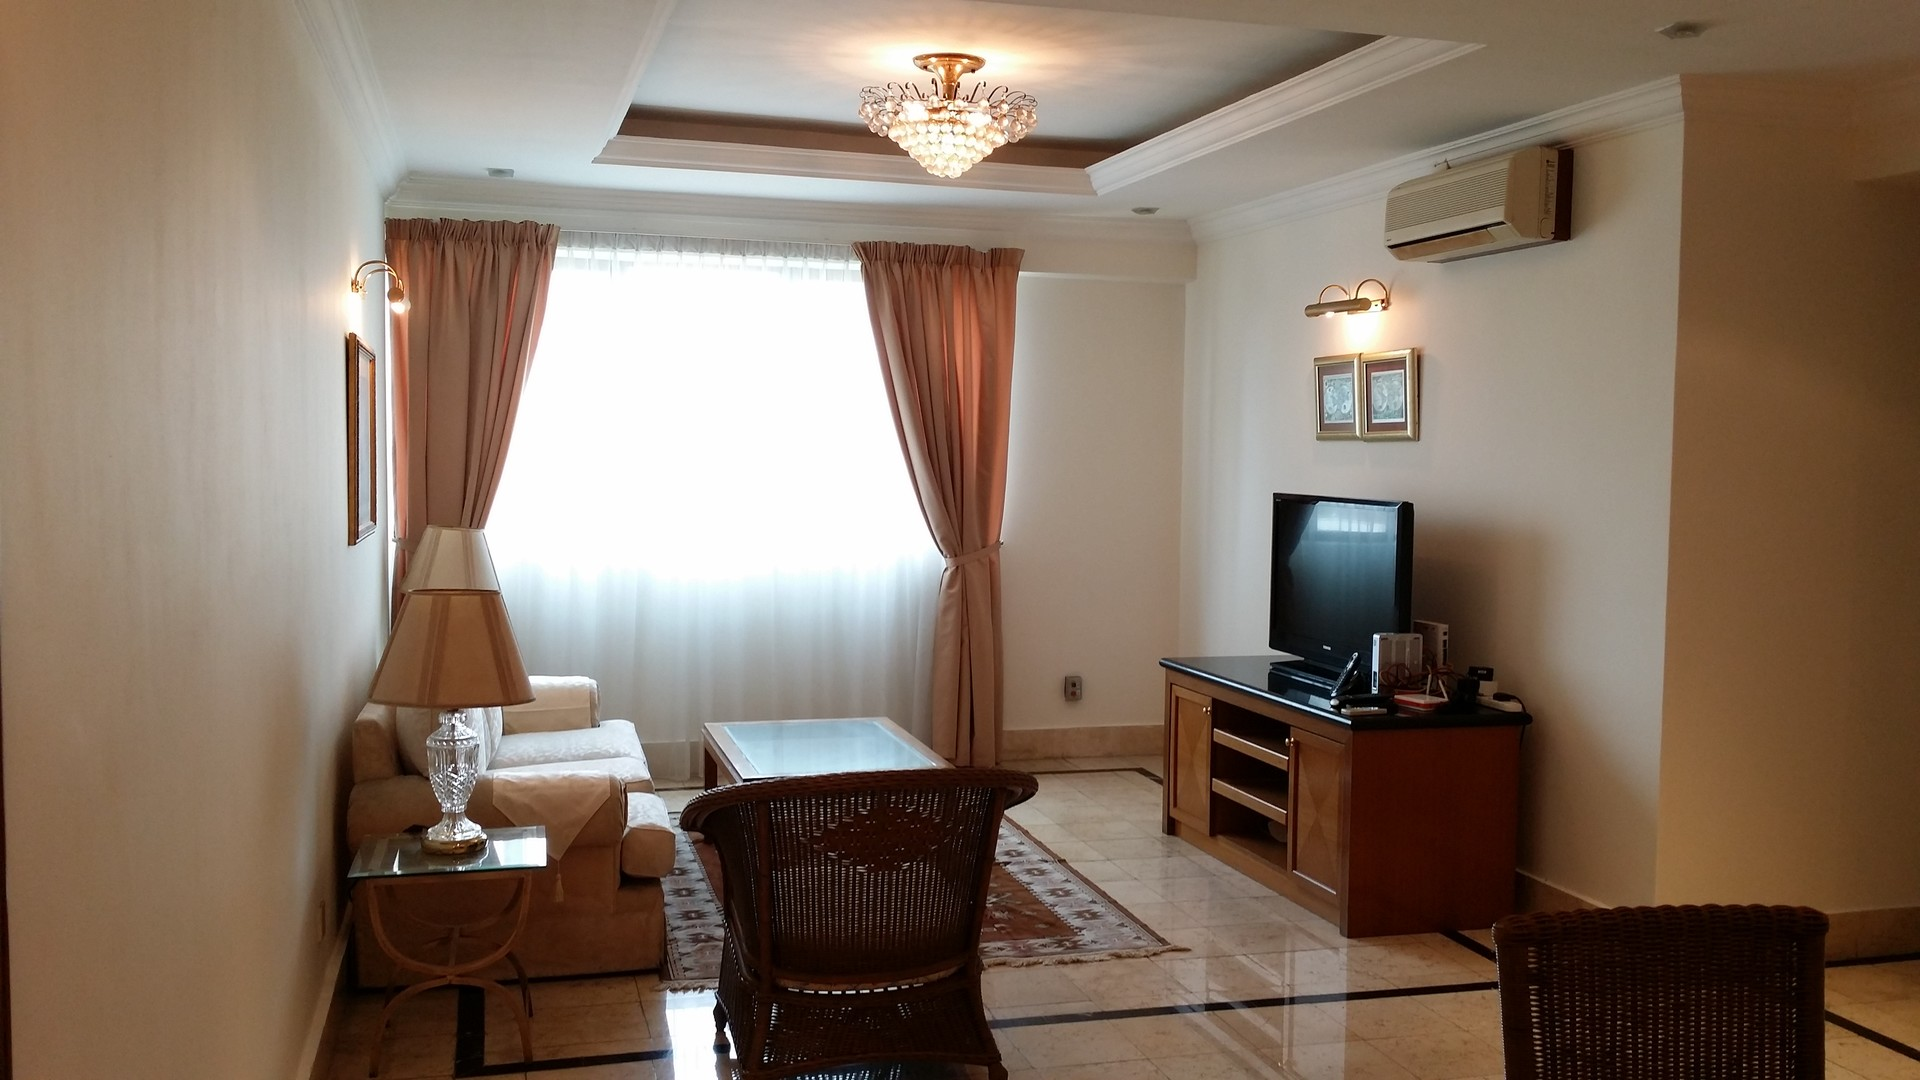 Malaysia kuala lumpur city center condominium furnished for Furnished room